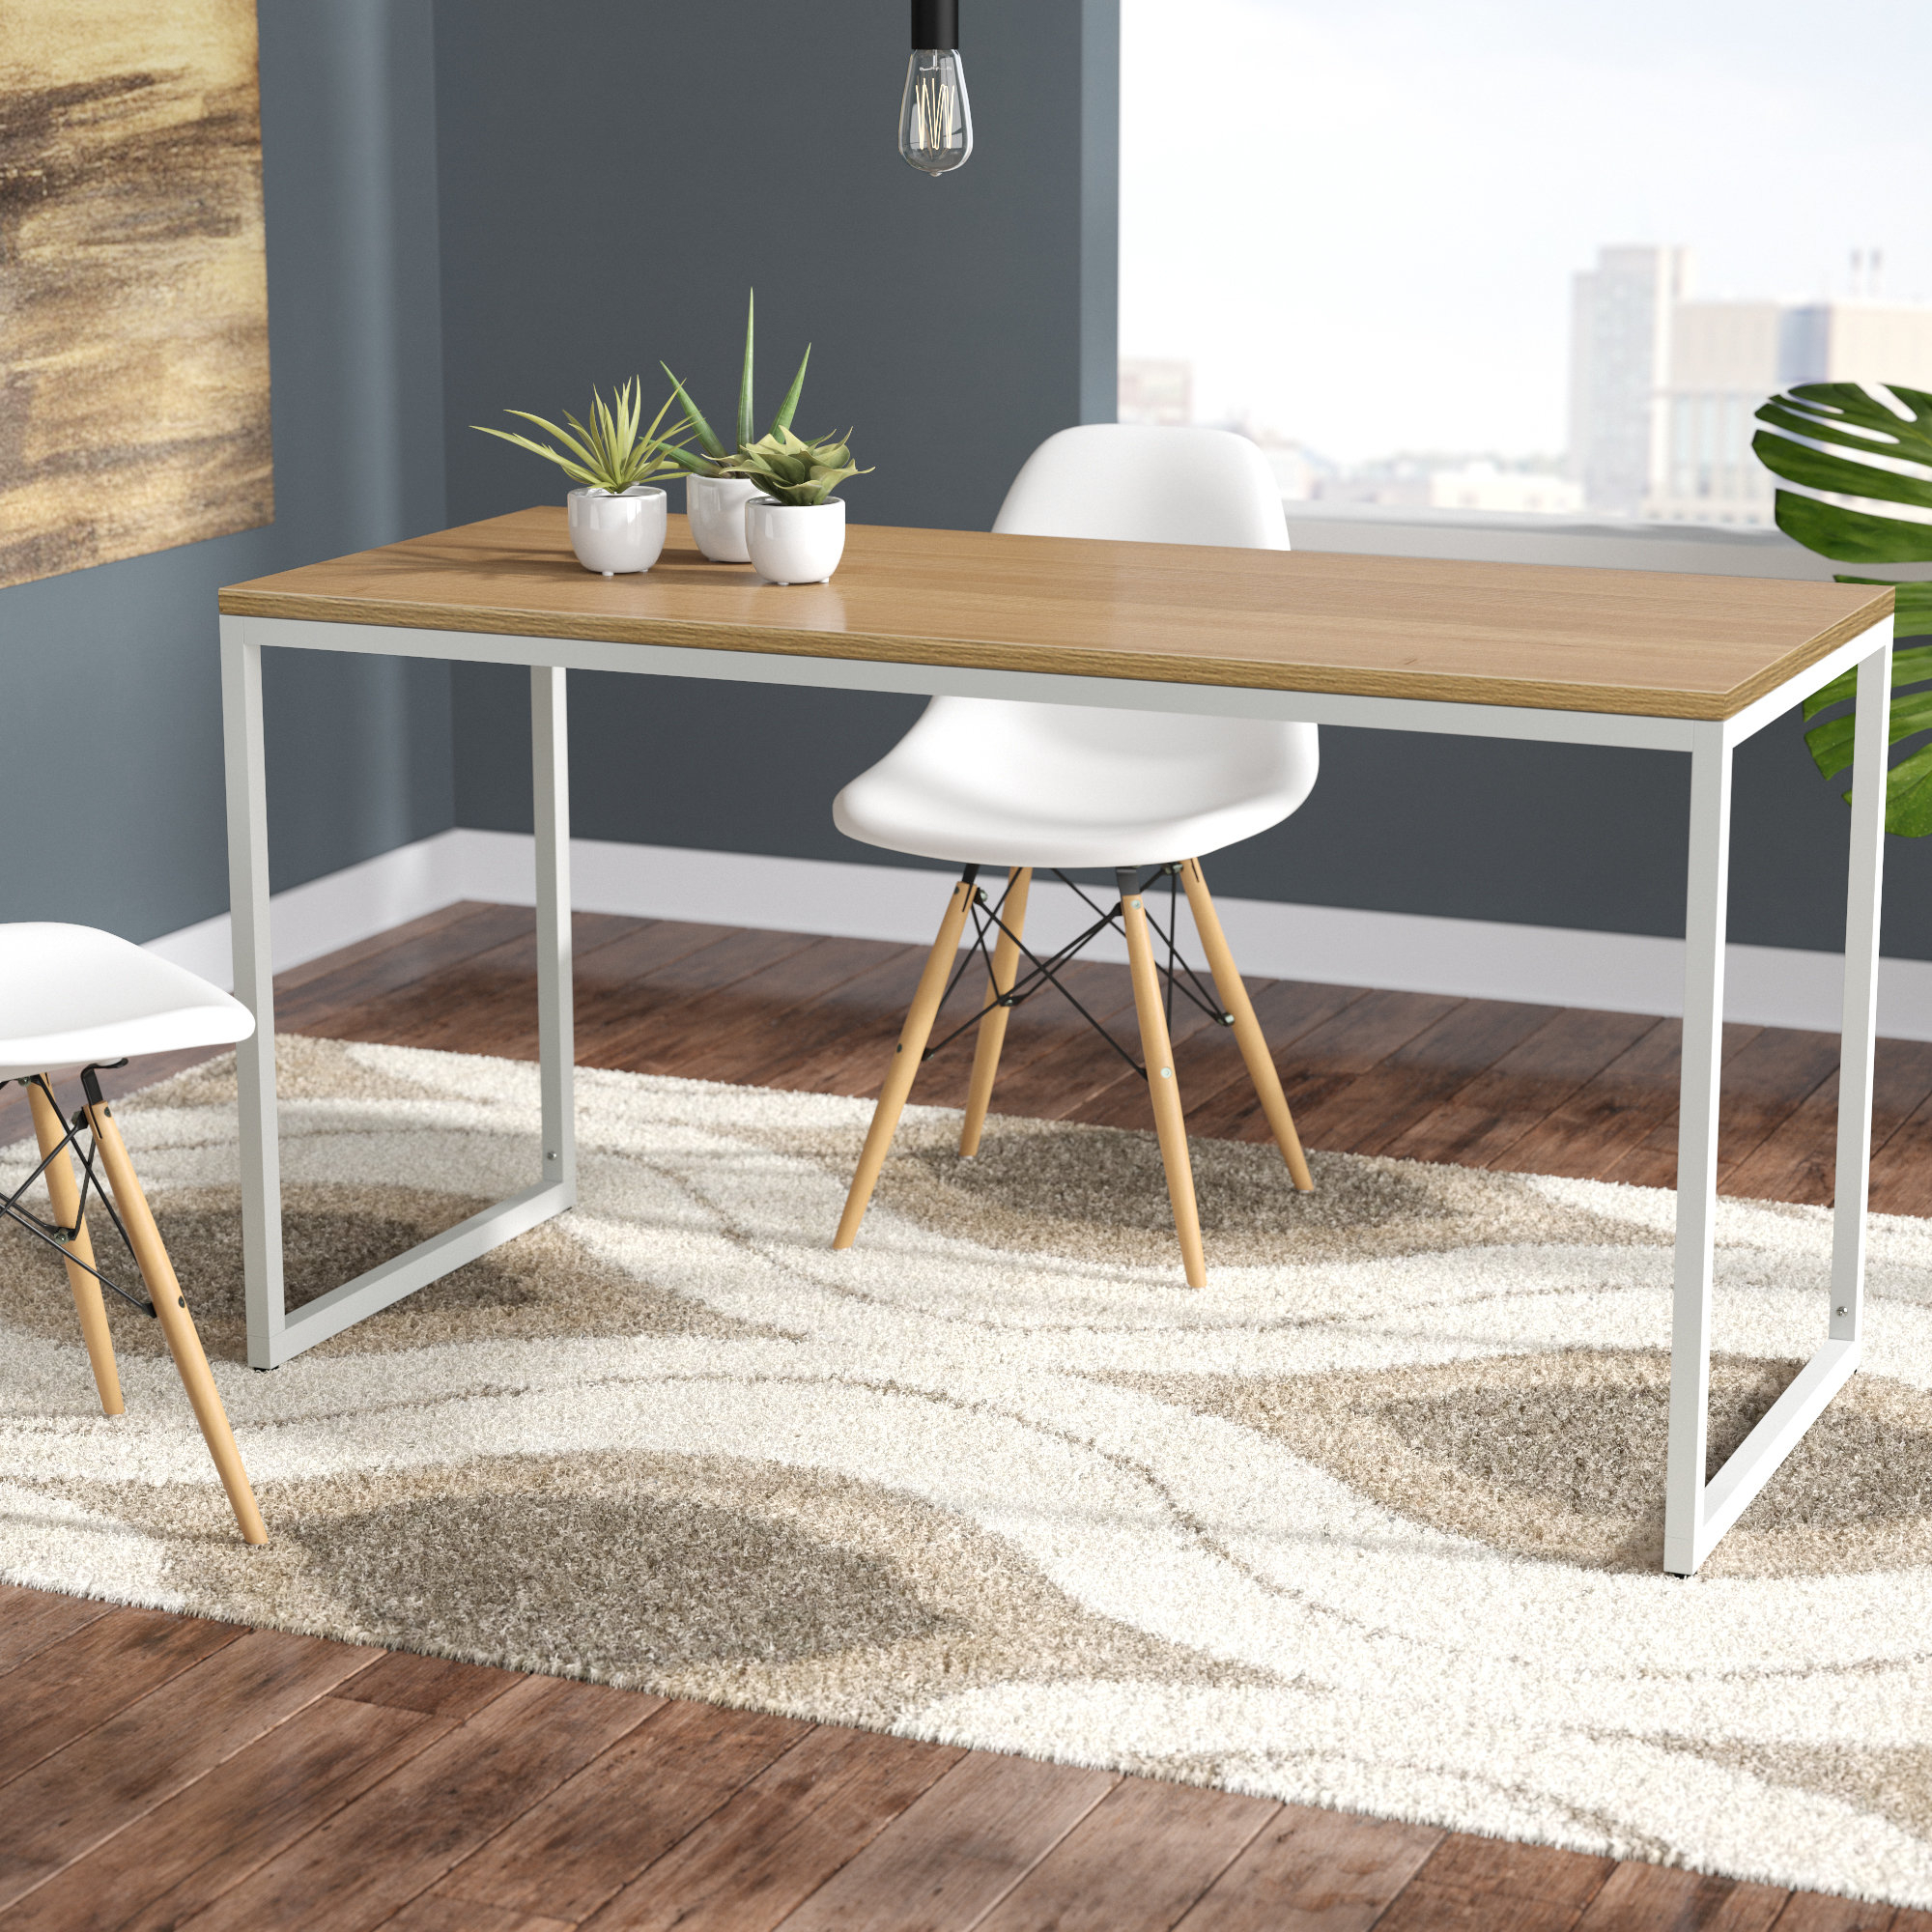 Chelmsford Dining Table Throughout Best And Newest Chelmsford 3 Piece Dining Sets (View 8 of 20)